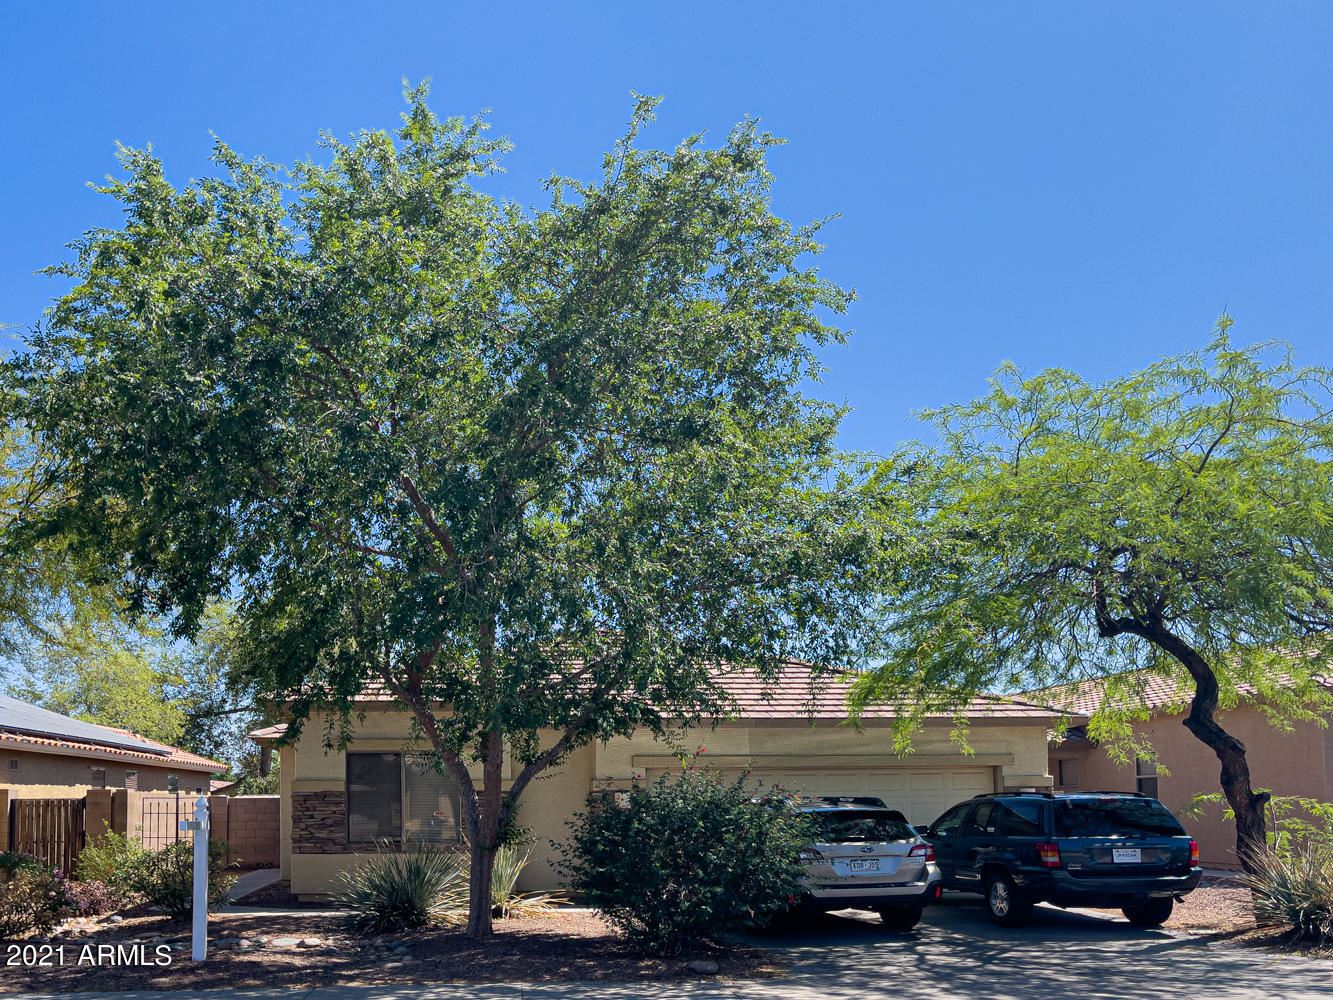 Photo of 12625 W CERCADO Lane, Litchfield Park, AZ 85340 (MLS # 6226762)